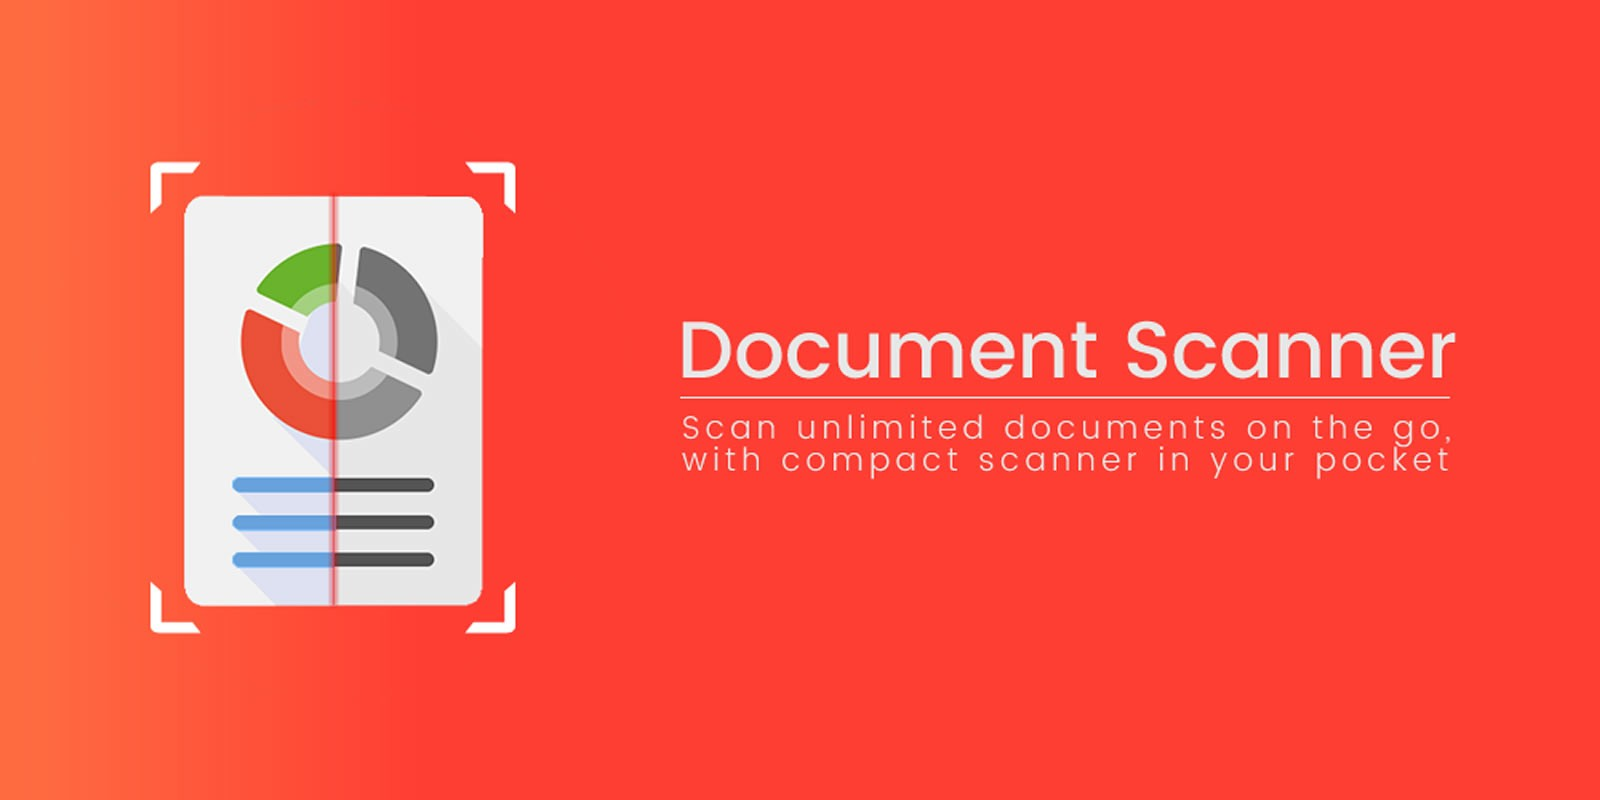 Document Scanner App - iOS Source Code